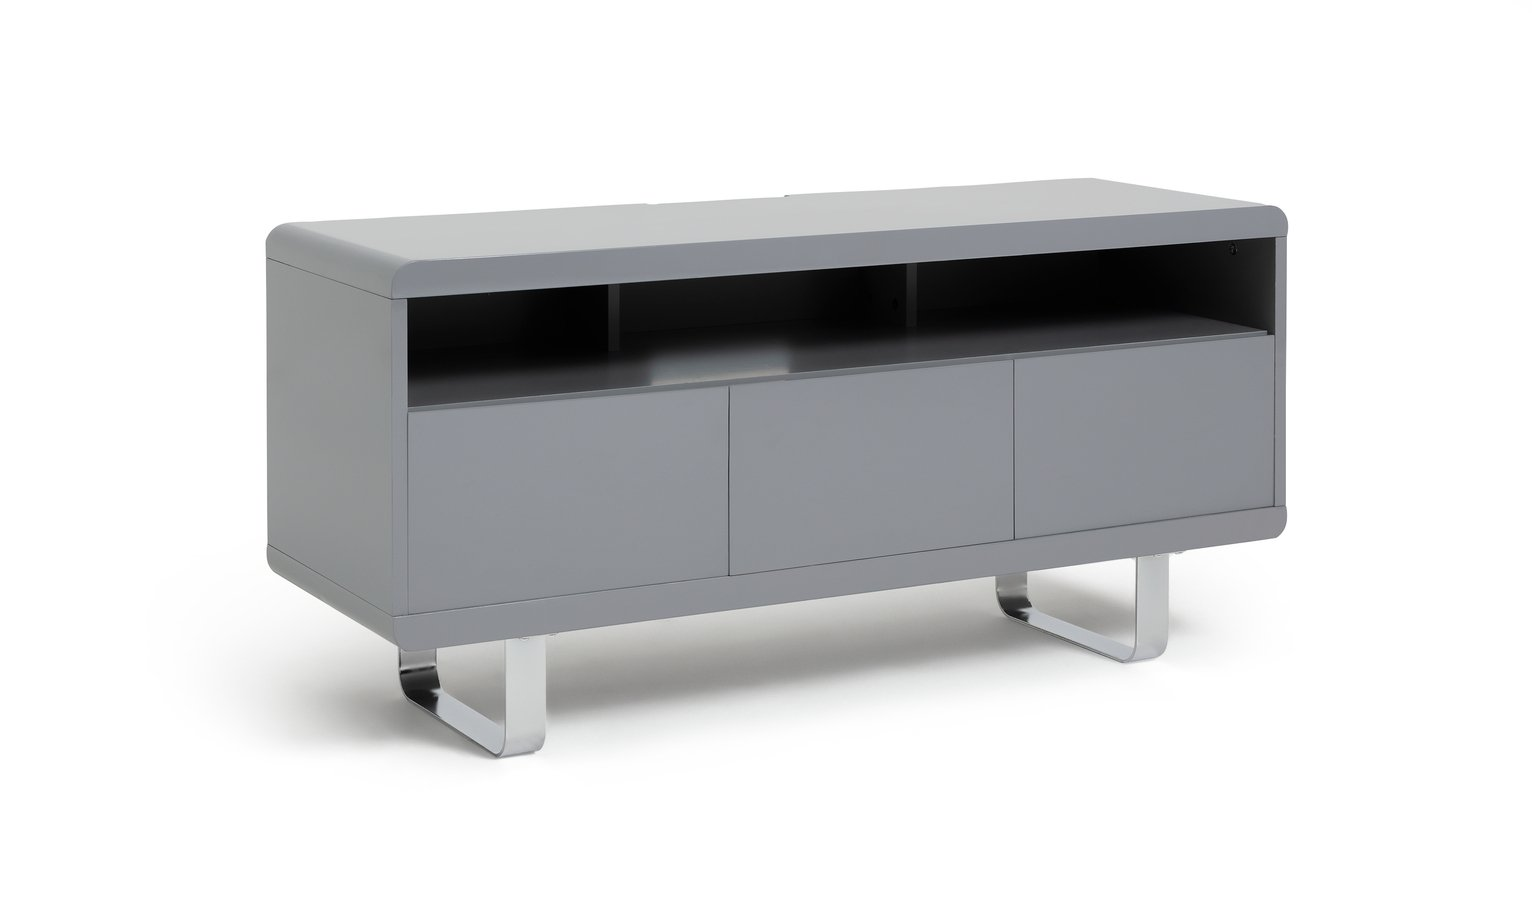 cde7e1c5a9 Save 20% when you spend £100 or more on selected indoor furniture ...